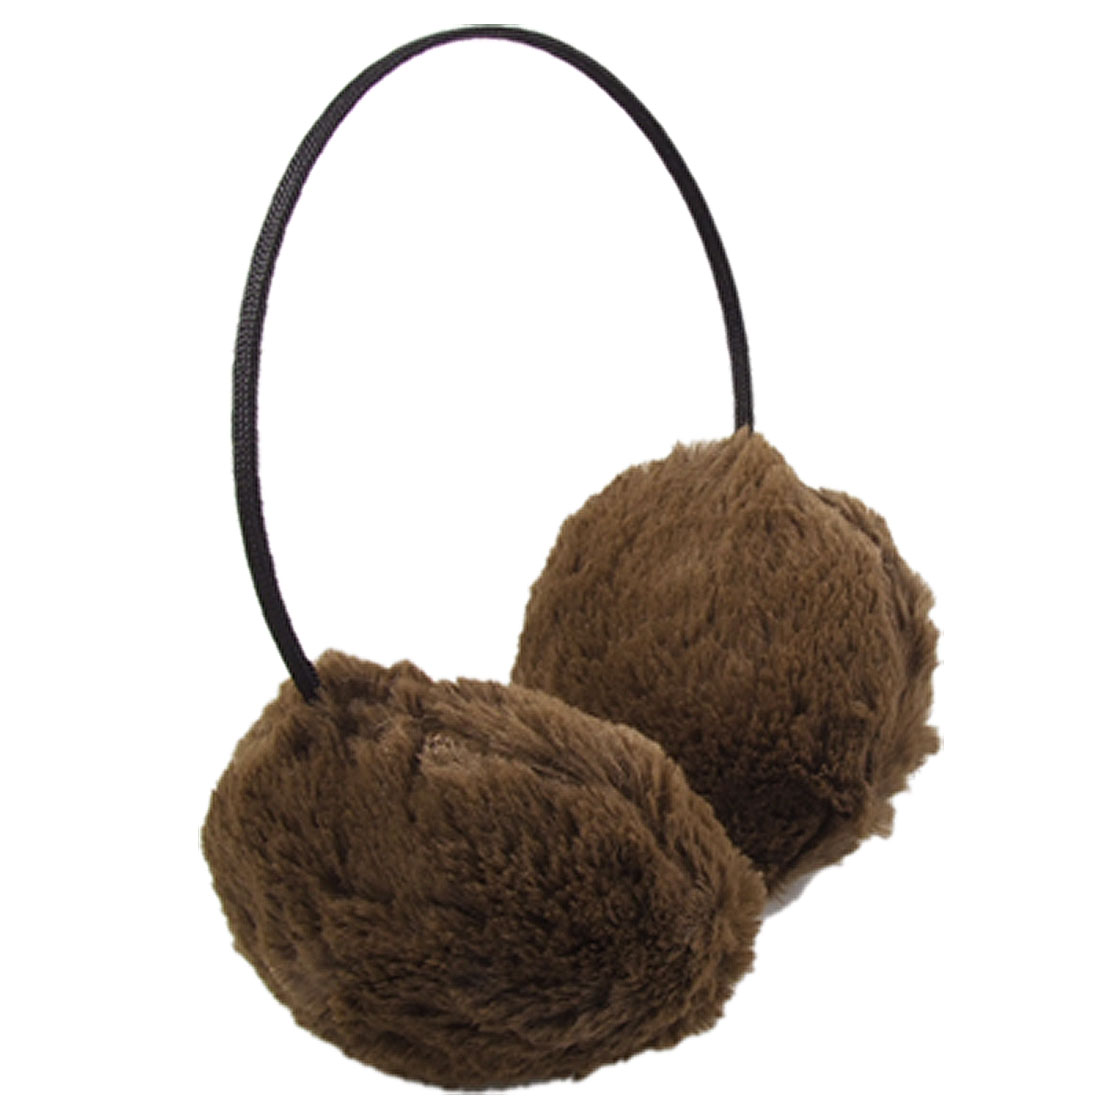 Fluffy Plush Adjustable Headband Earmuff Ear Warmer Coffee Color for Christmas